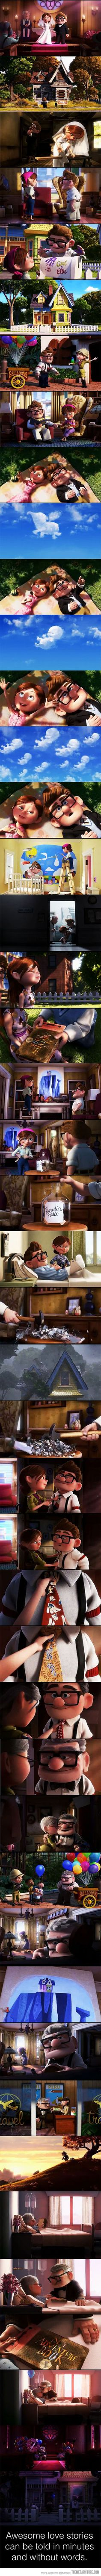 the best love stories can be told without saying a word. #up #disney #pixar